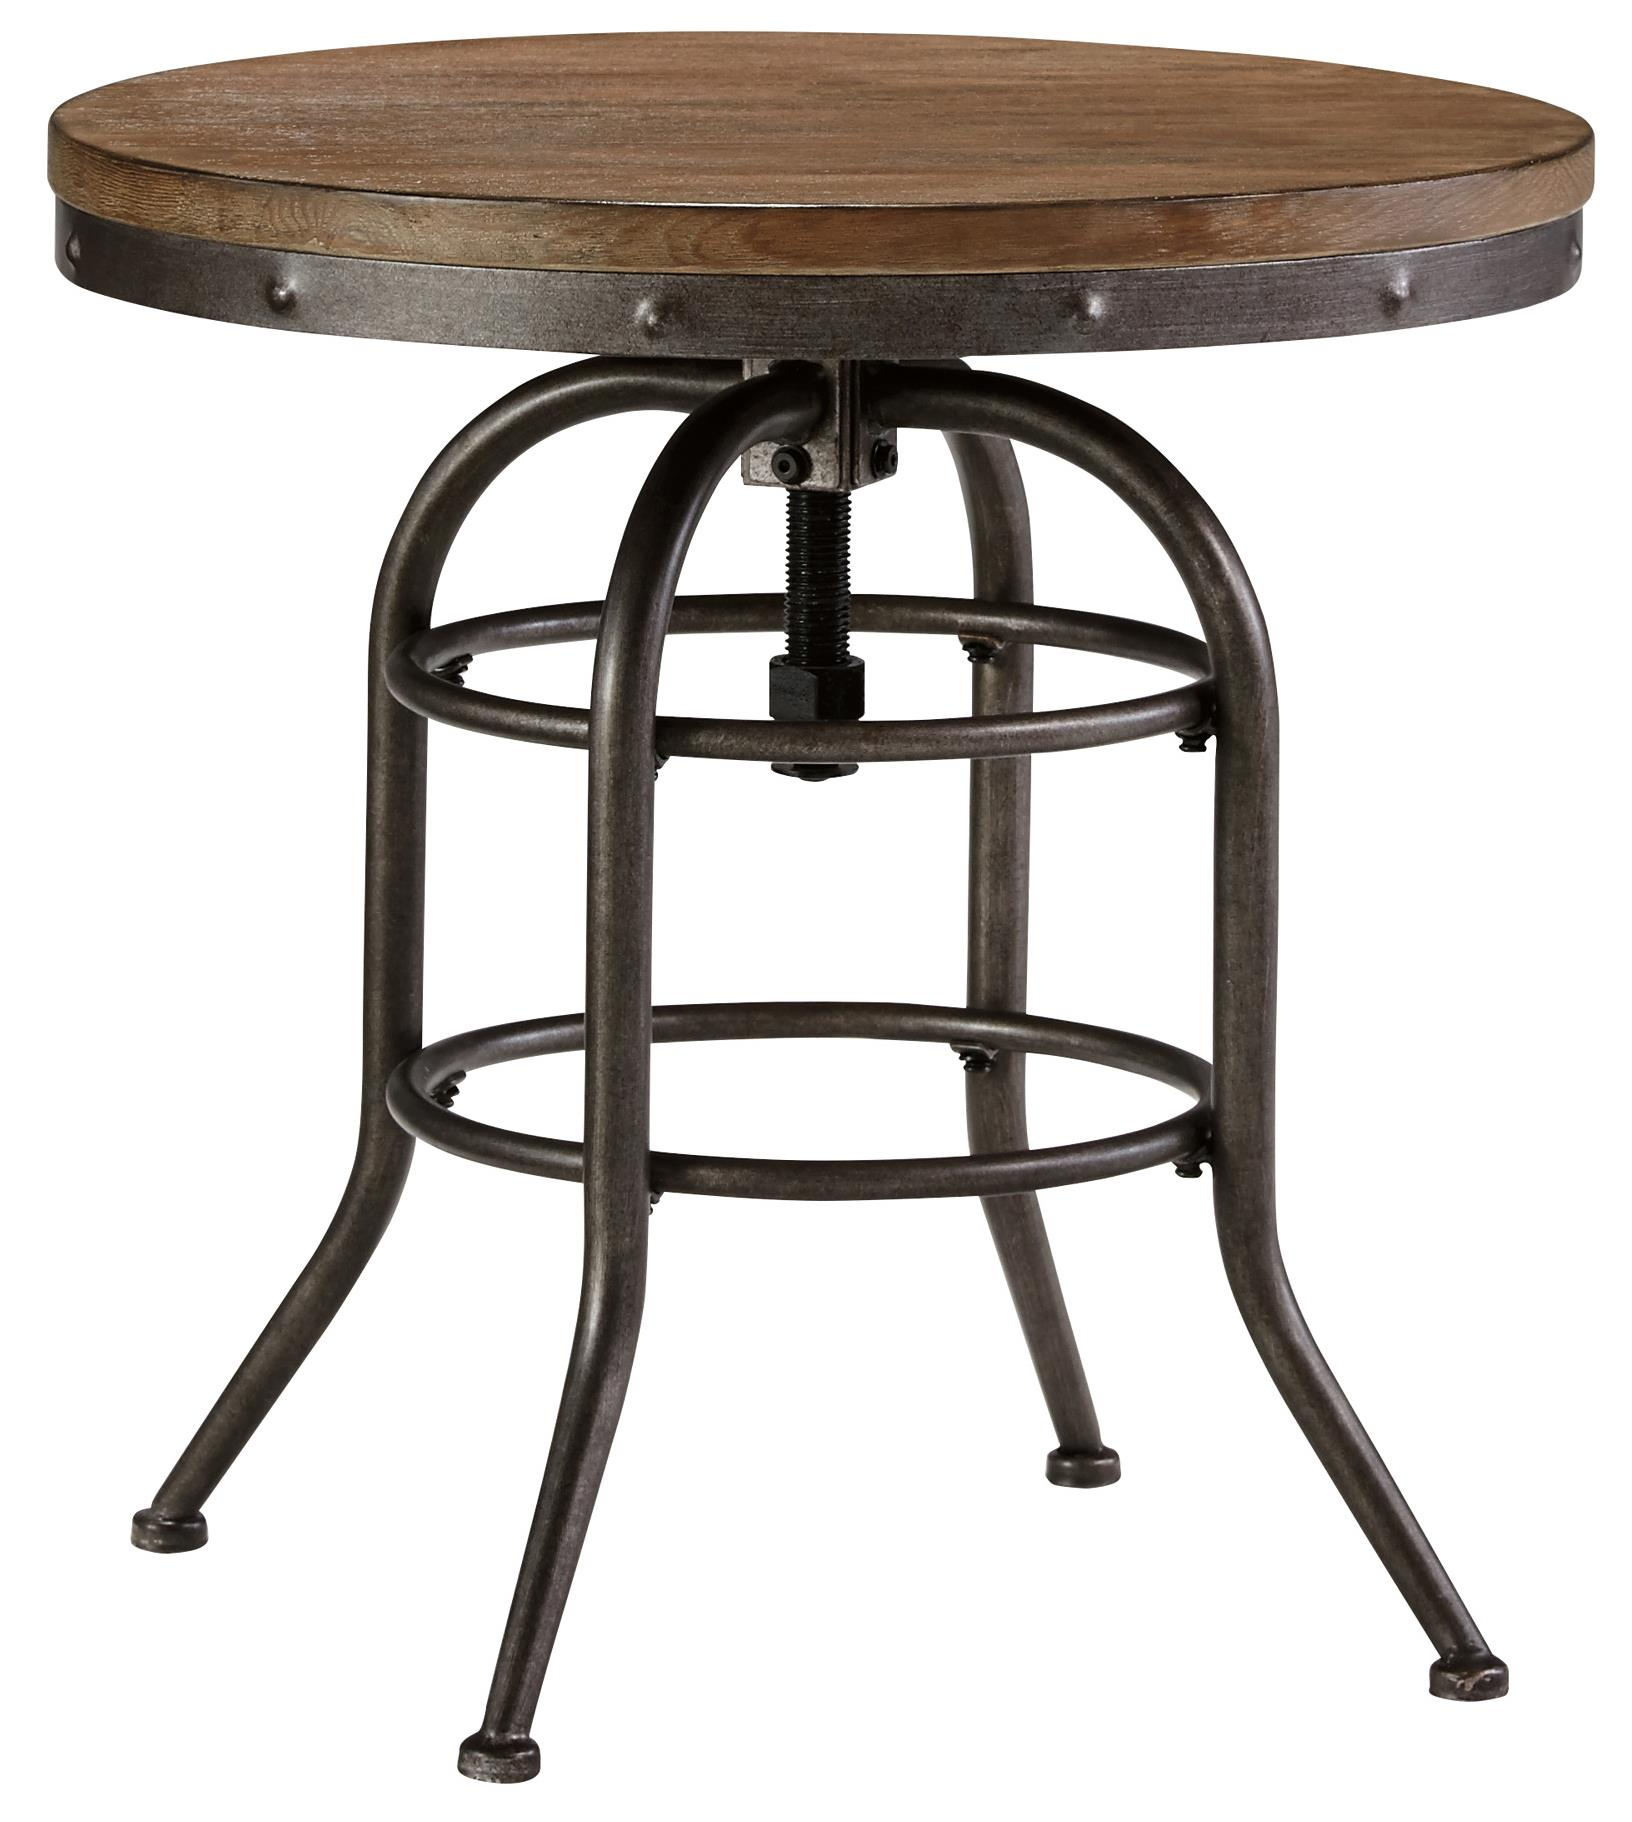 Merveilleux Industrial Style Round End Table With Adjustable Height